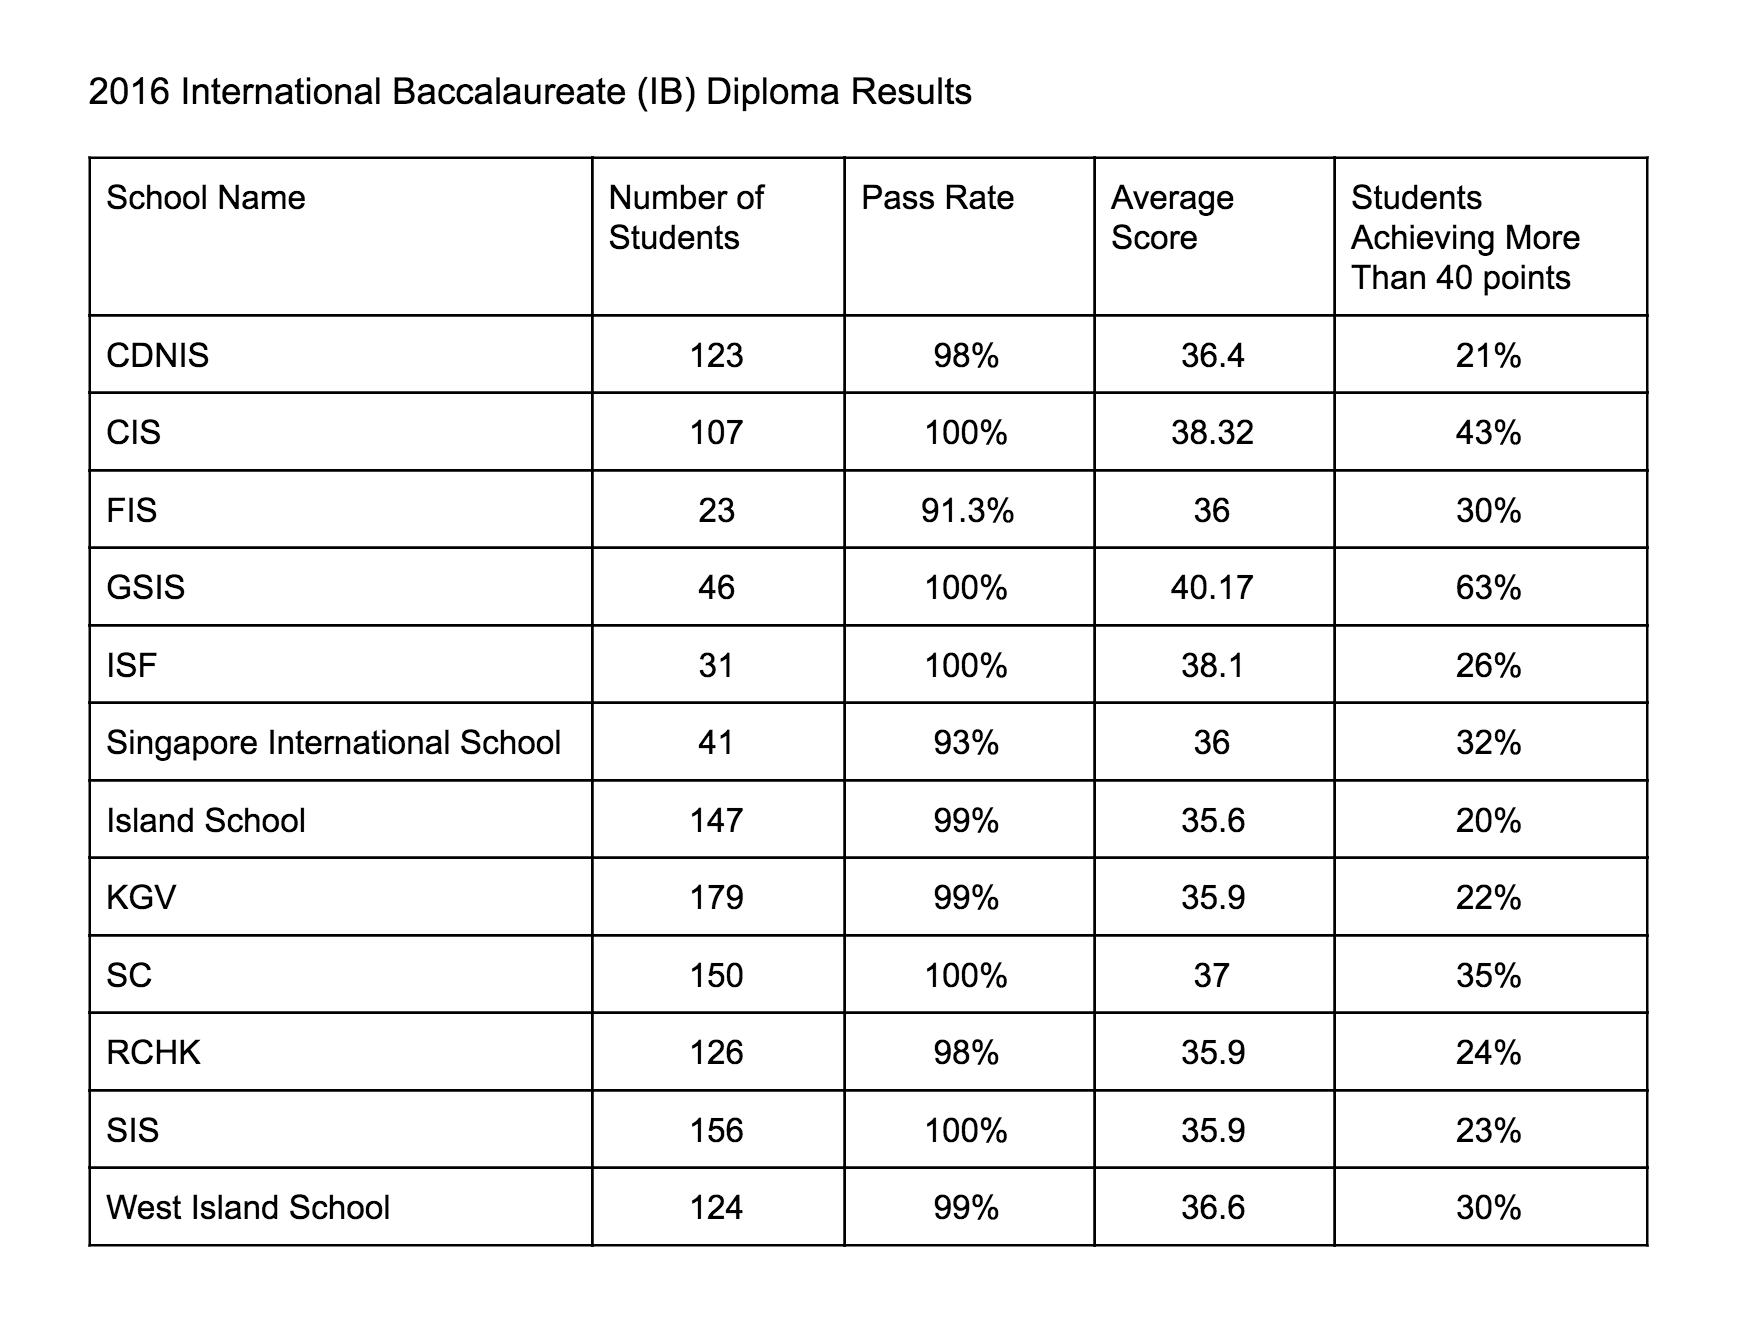 2016 International Baccalaureate (IB) Diploma Results